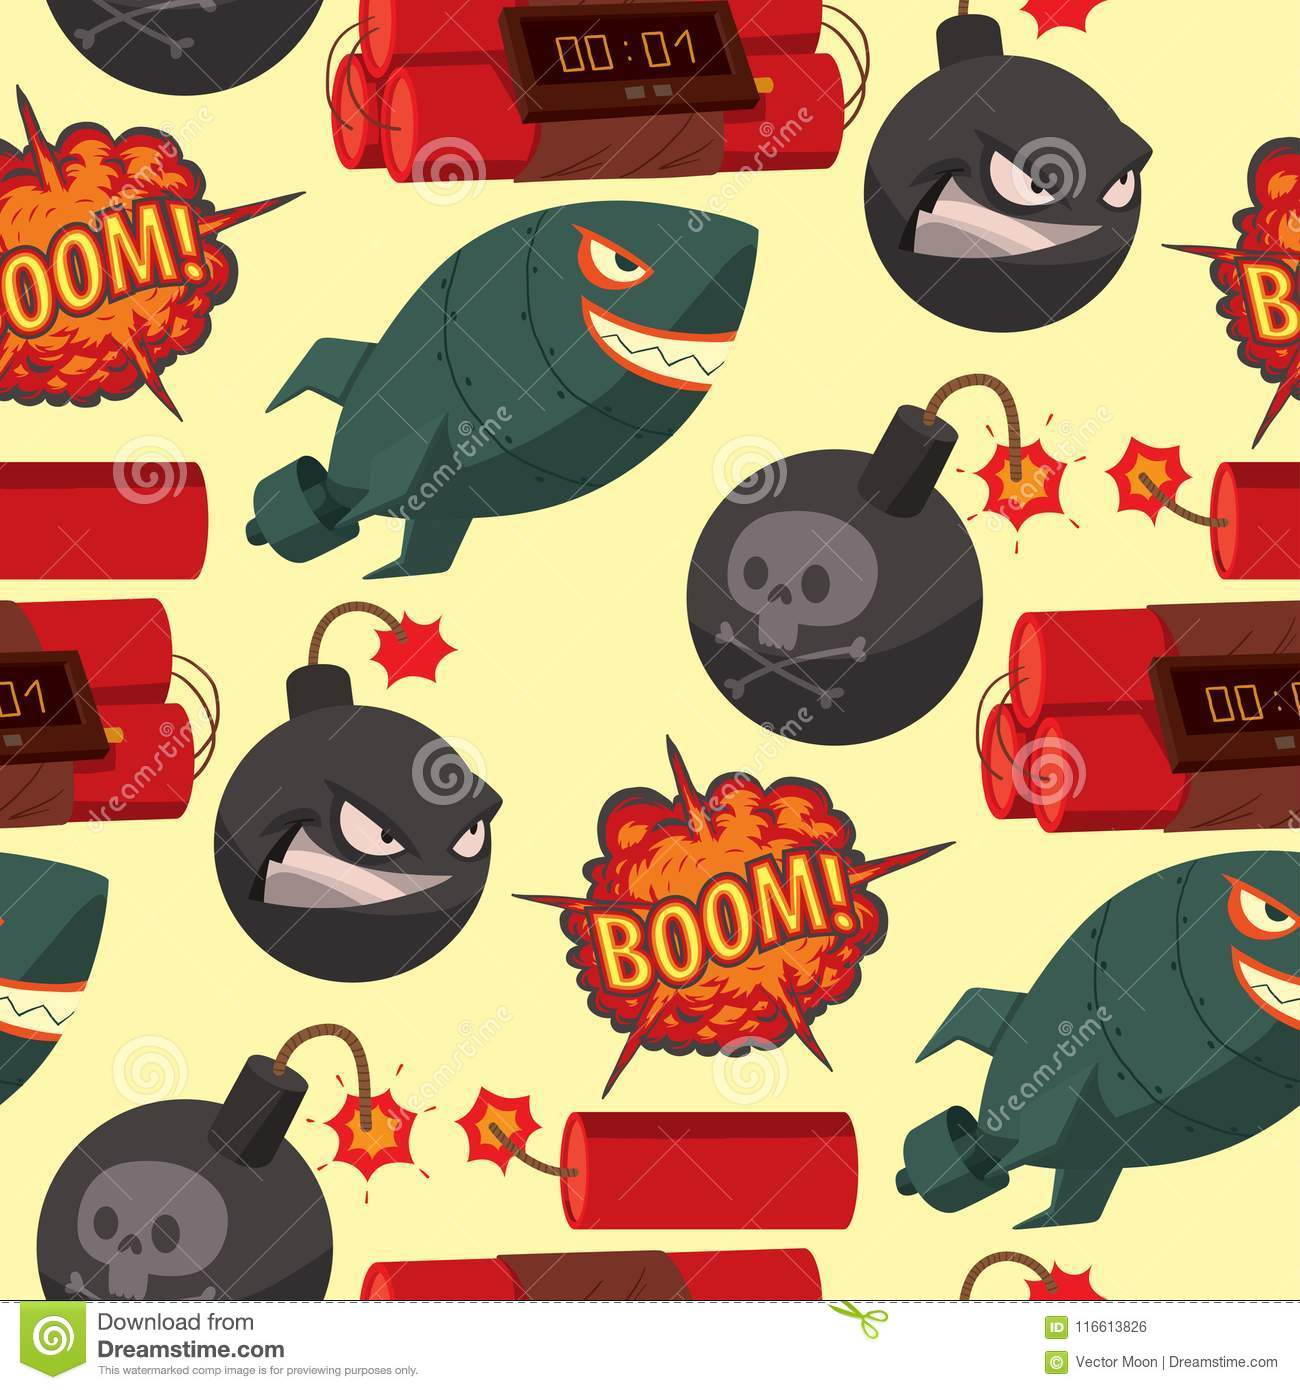 Bomb Dynamite Fuse Vector Seamless Pattern Background Illustration Grenade Attack Power Ball